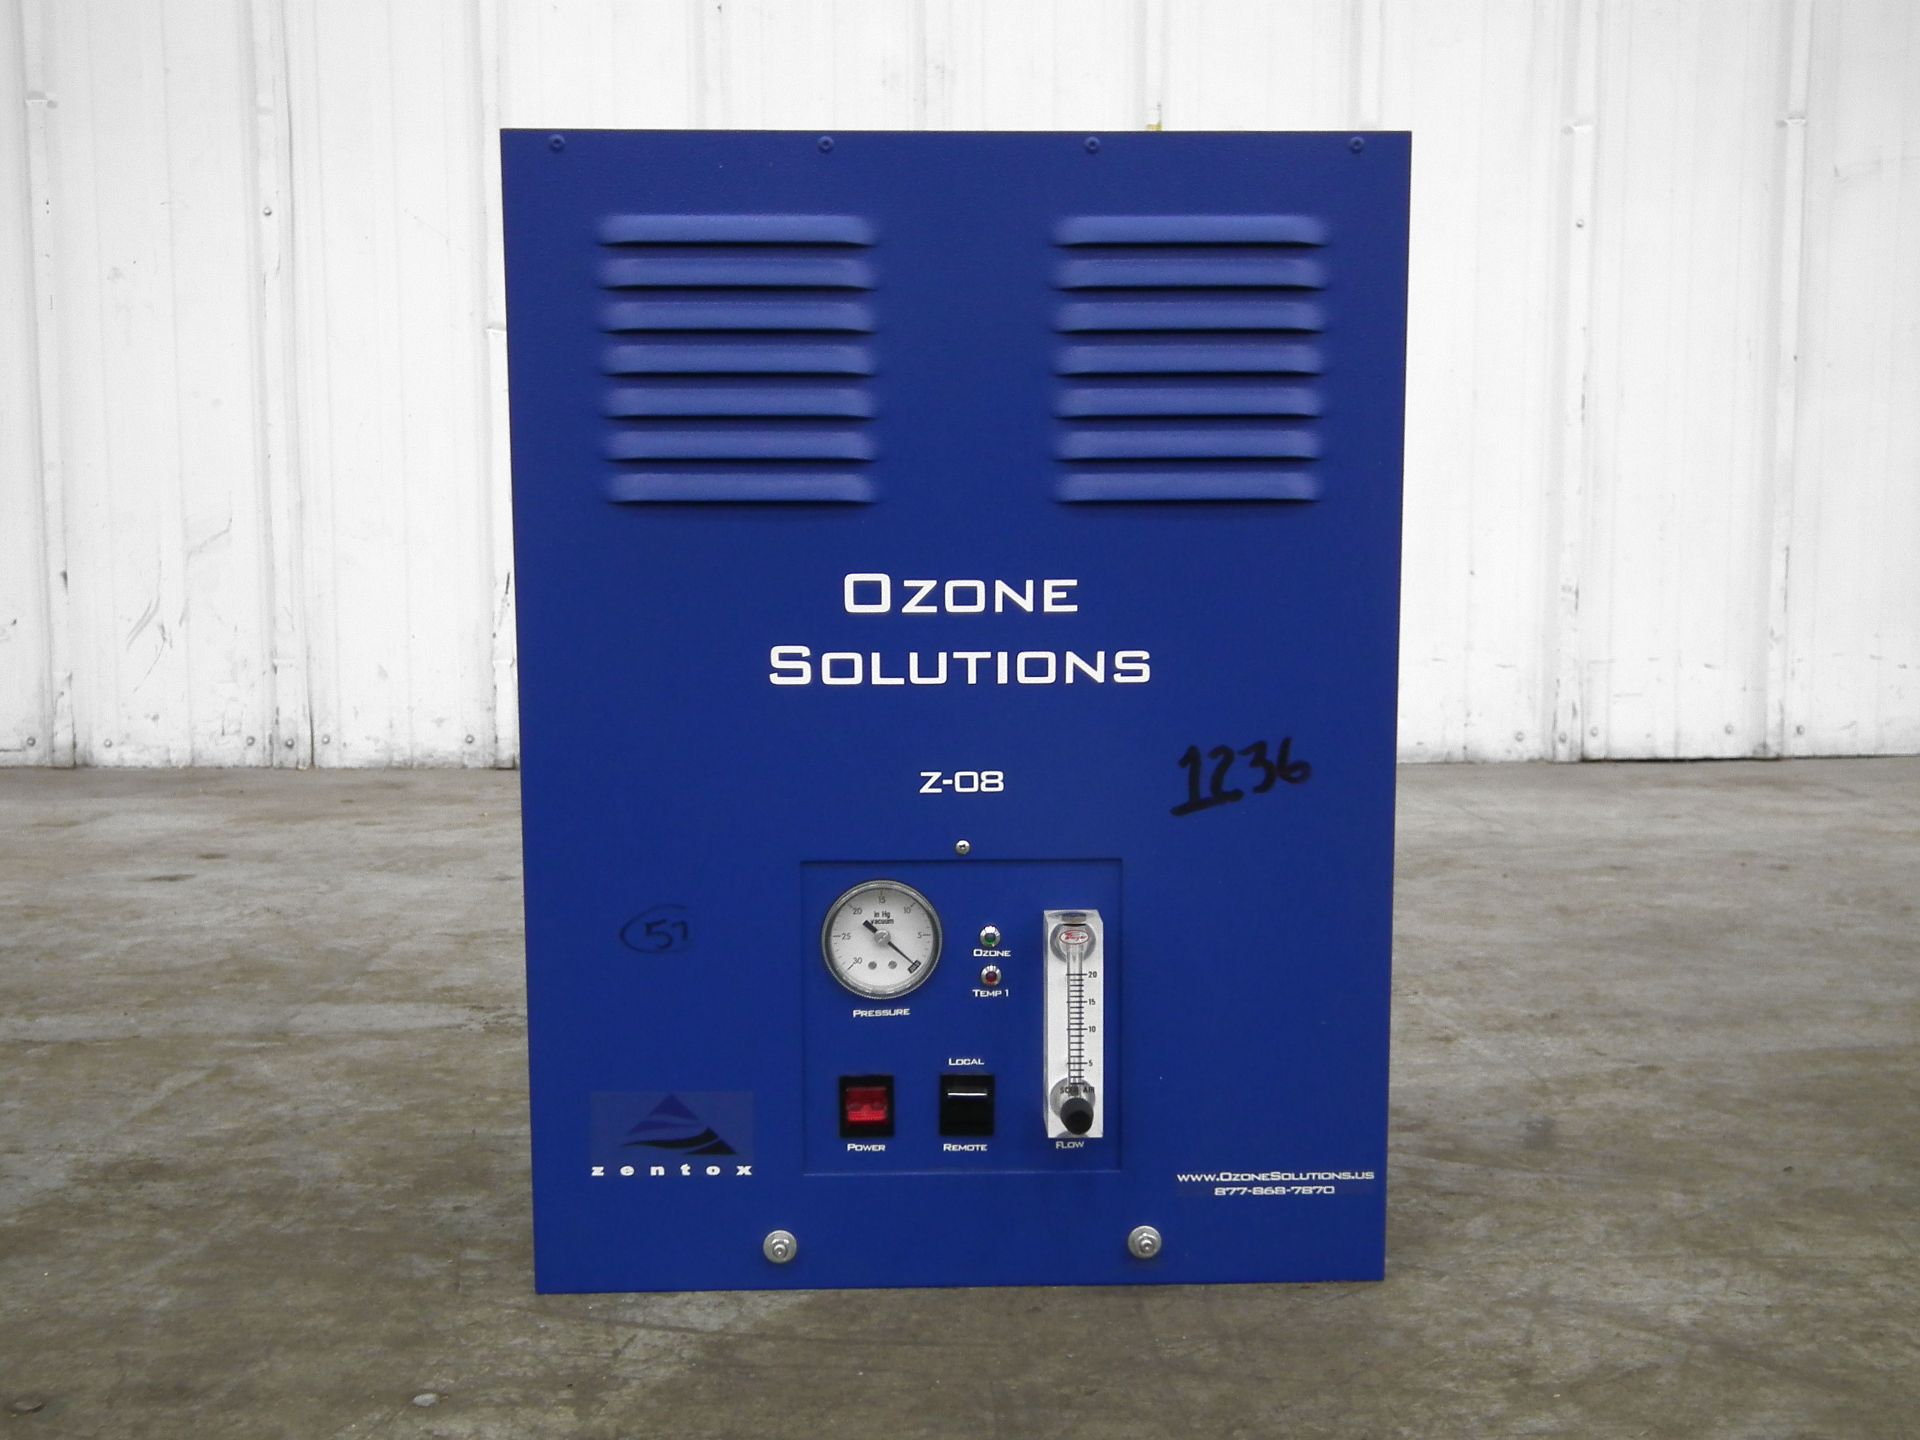 Lot 242 - Zentox Z-08 Indoor Air Purification System B5678